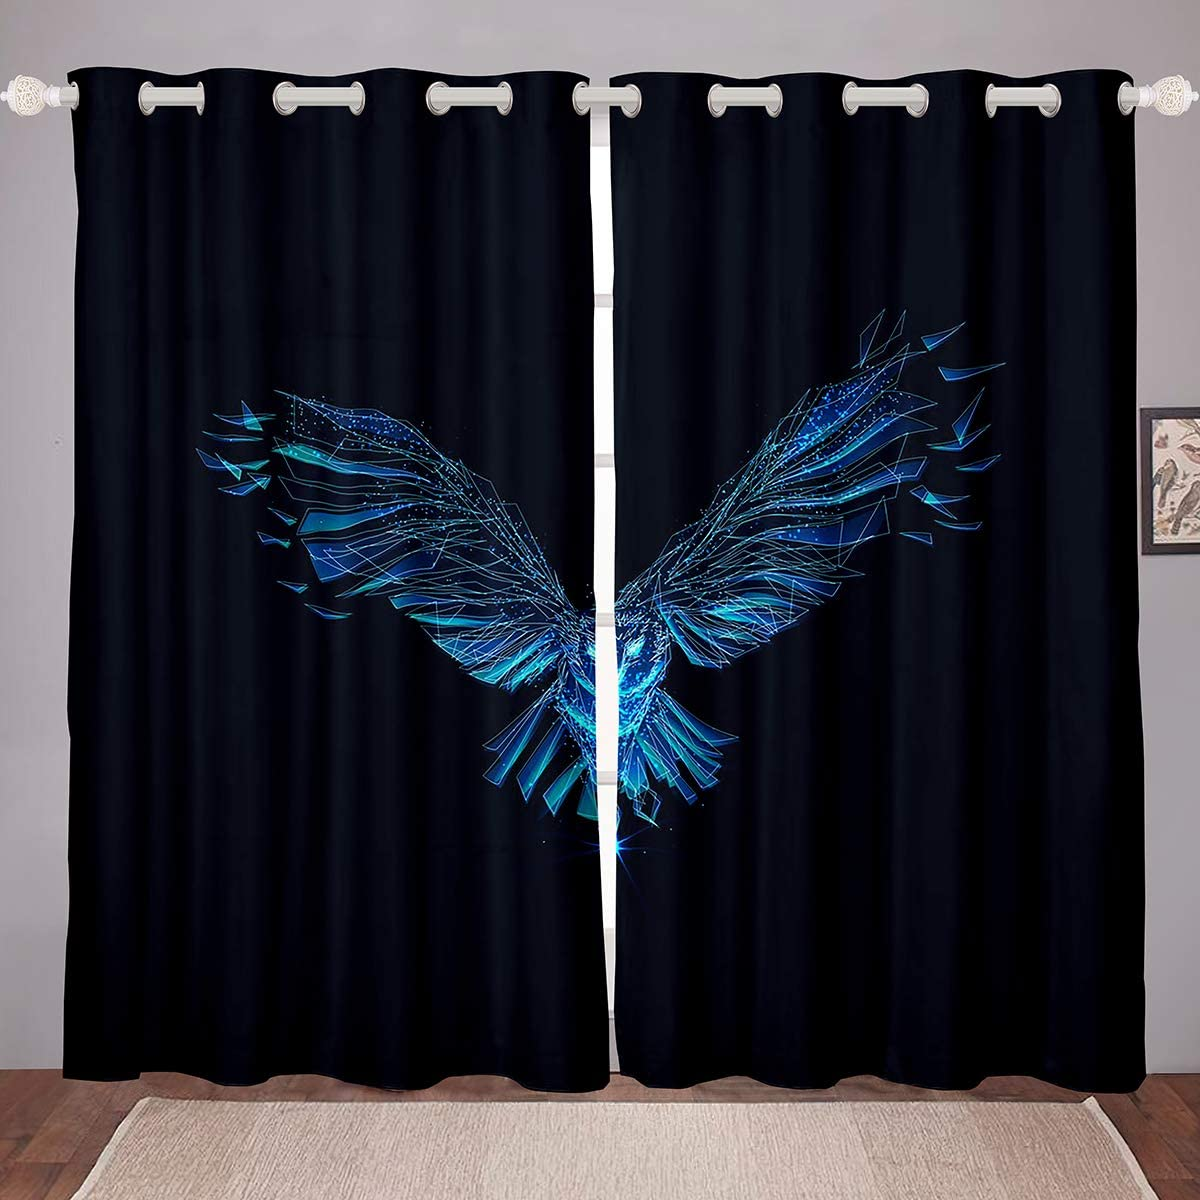 "Adults Teal Eagle Curtain Panels Flying Owl Window Drapes Wild Bird Animal Window Curtains For Kids Teen Boys Young Man Science Technology Art Window Treatments 42W""x84L"" Living Room Bedroom Decor"